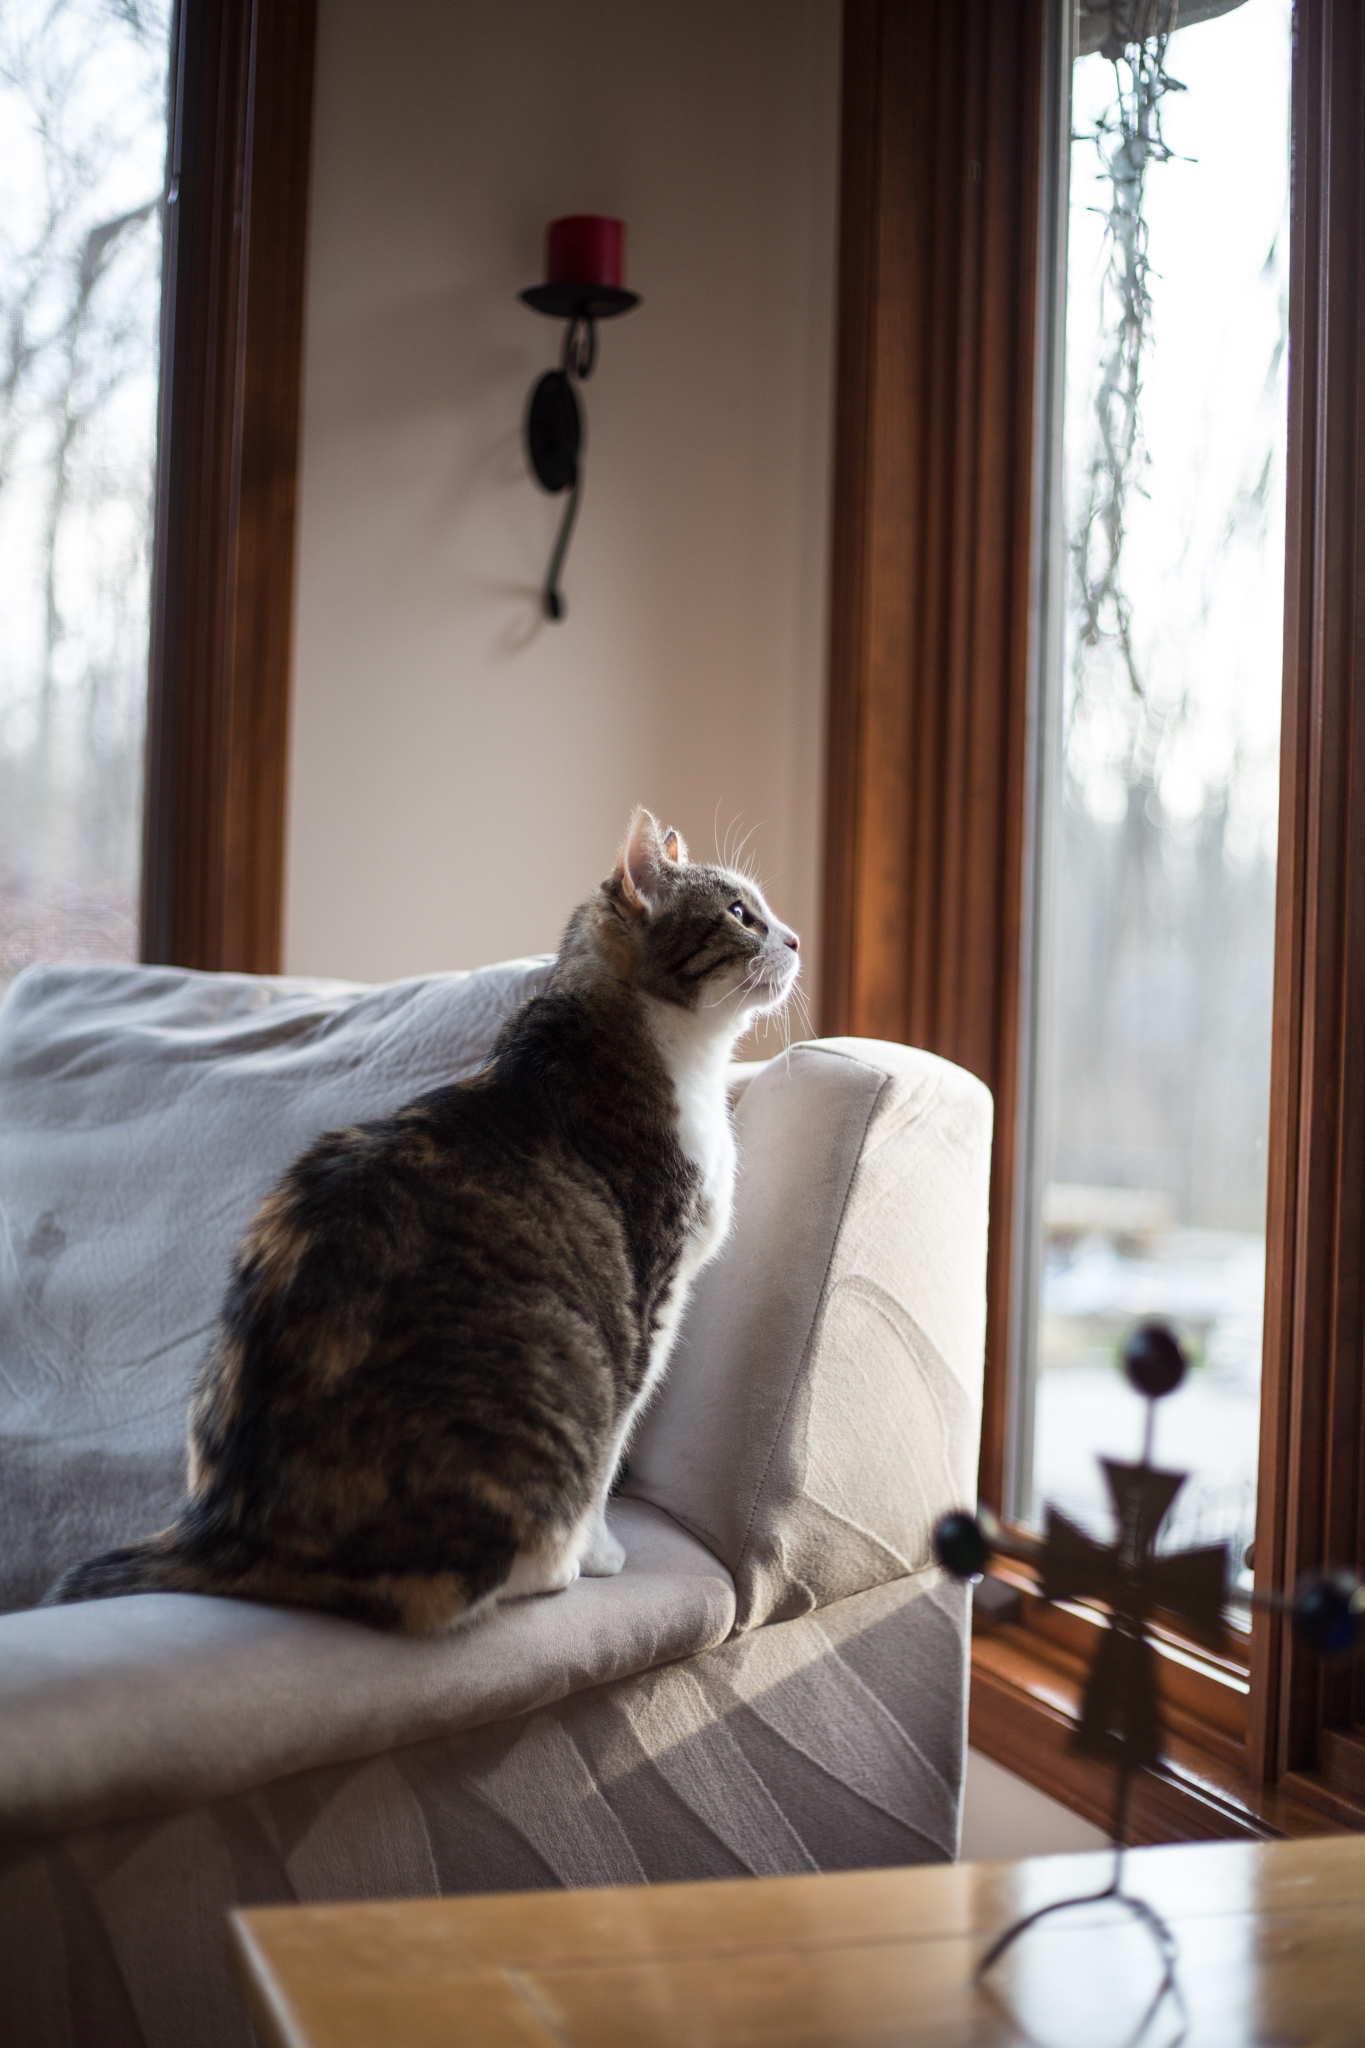 Spring sprung out briefly... oh so briefly... but now Winter has come again.  - My cat Greta's thoughts as she stares longingly out the window.